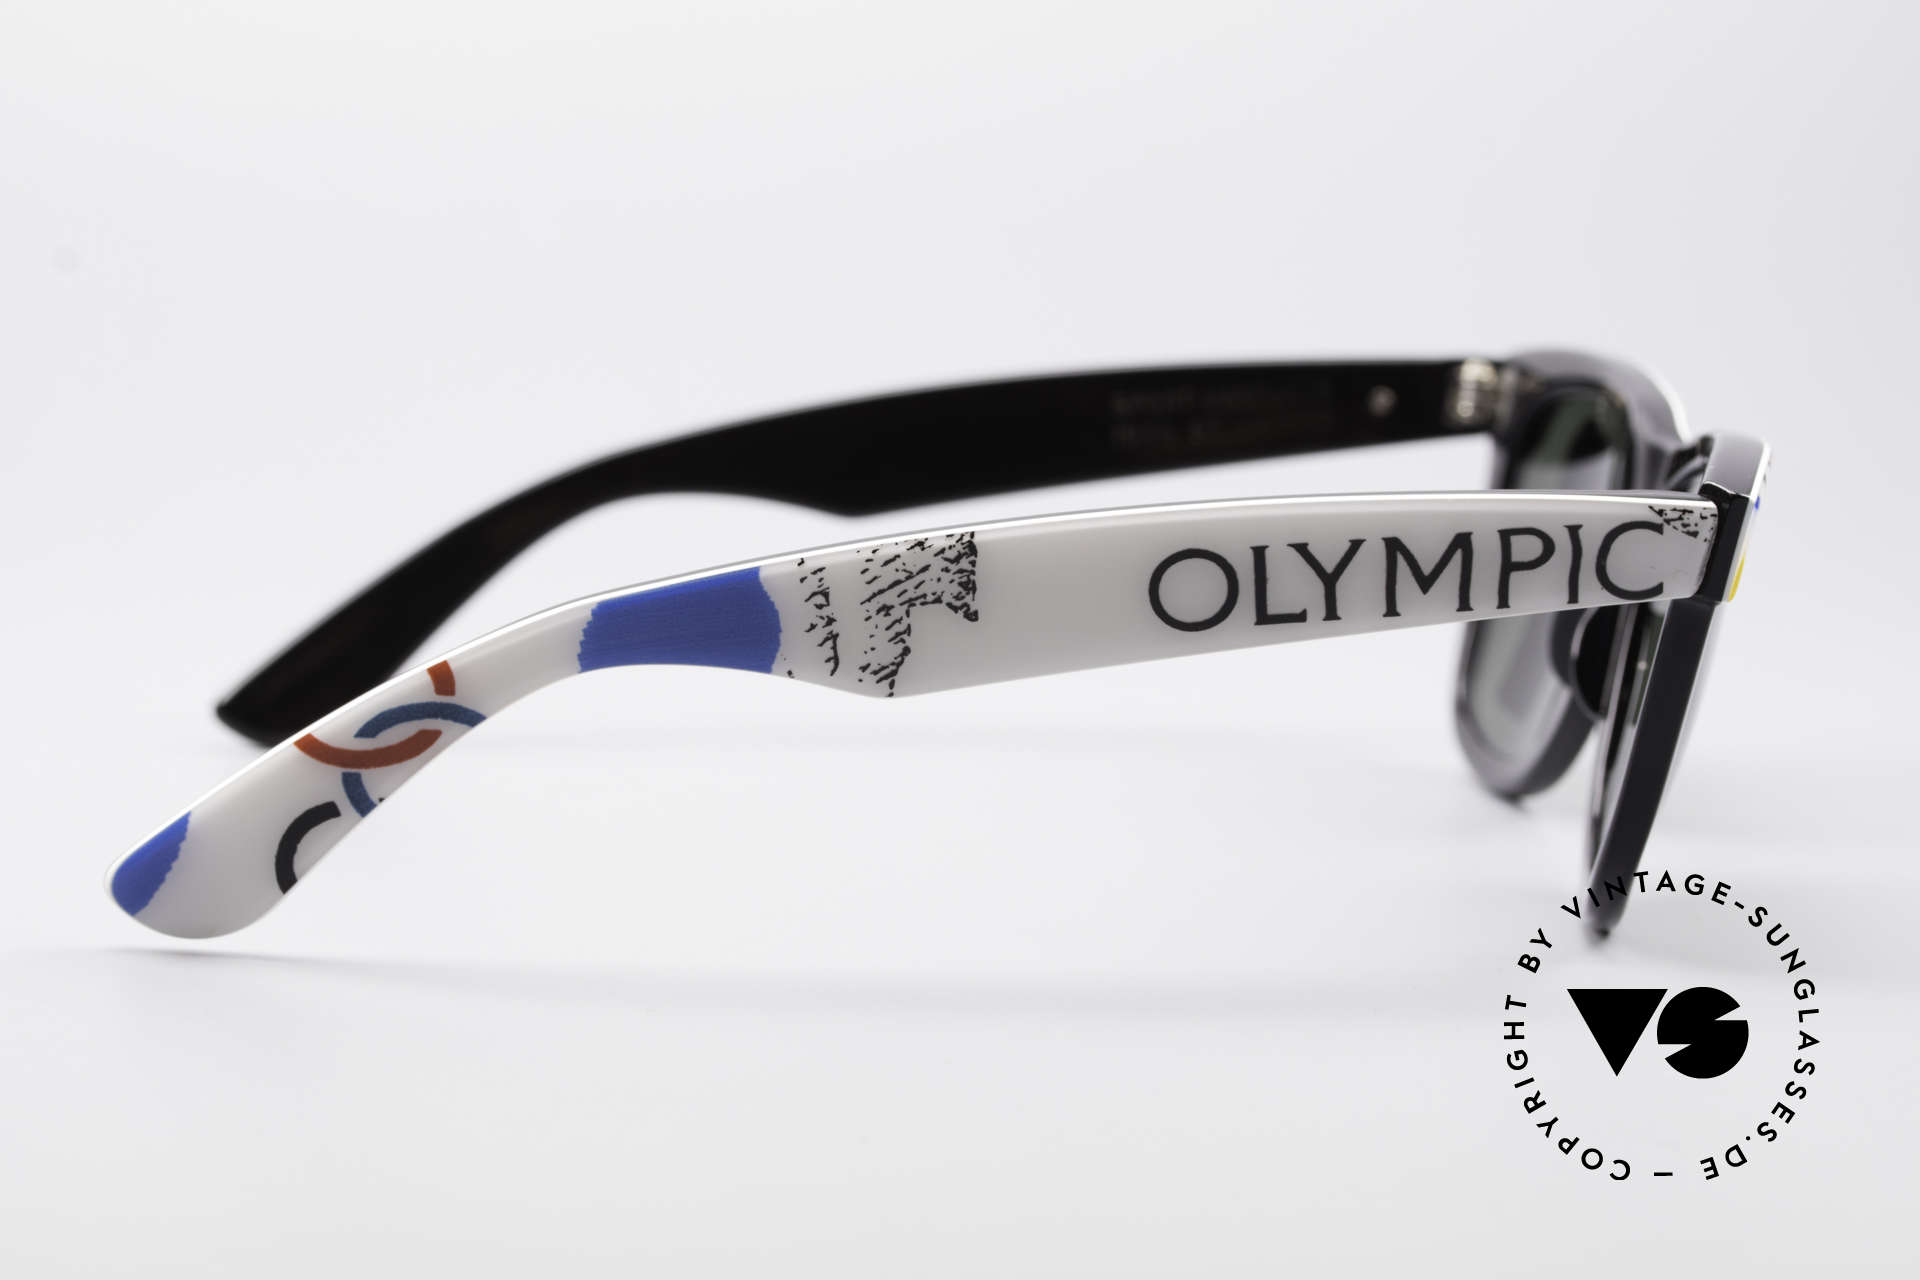 Ray Ban Wayfarer I Olympic Games St. Moritz, Size: medium, Made for Men and Women